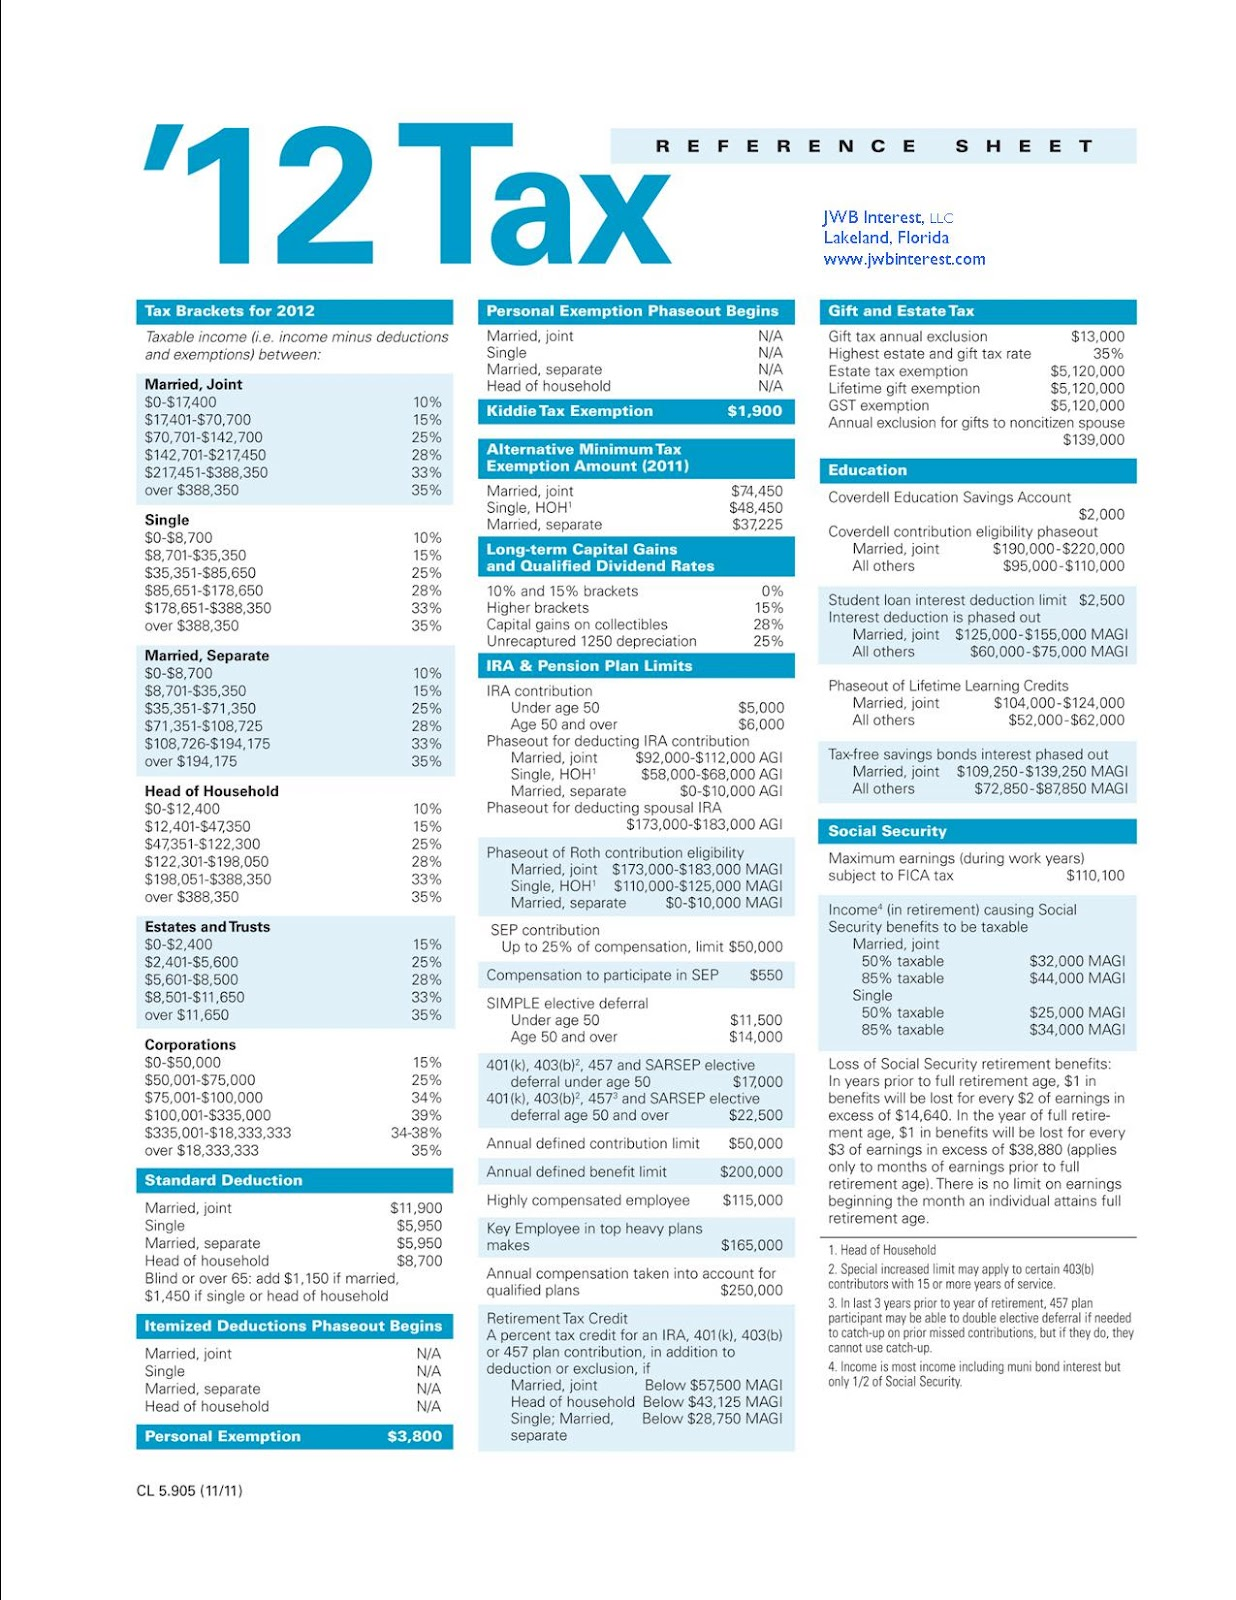 Tax Levy: Irs Tax Levy Table 2012